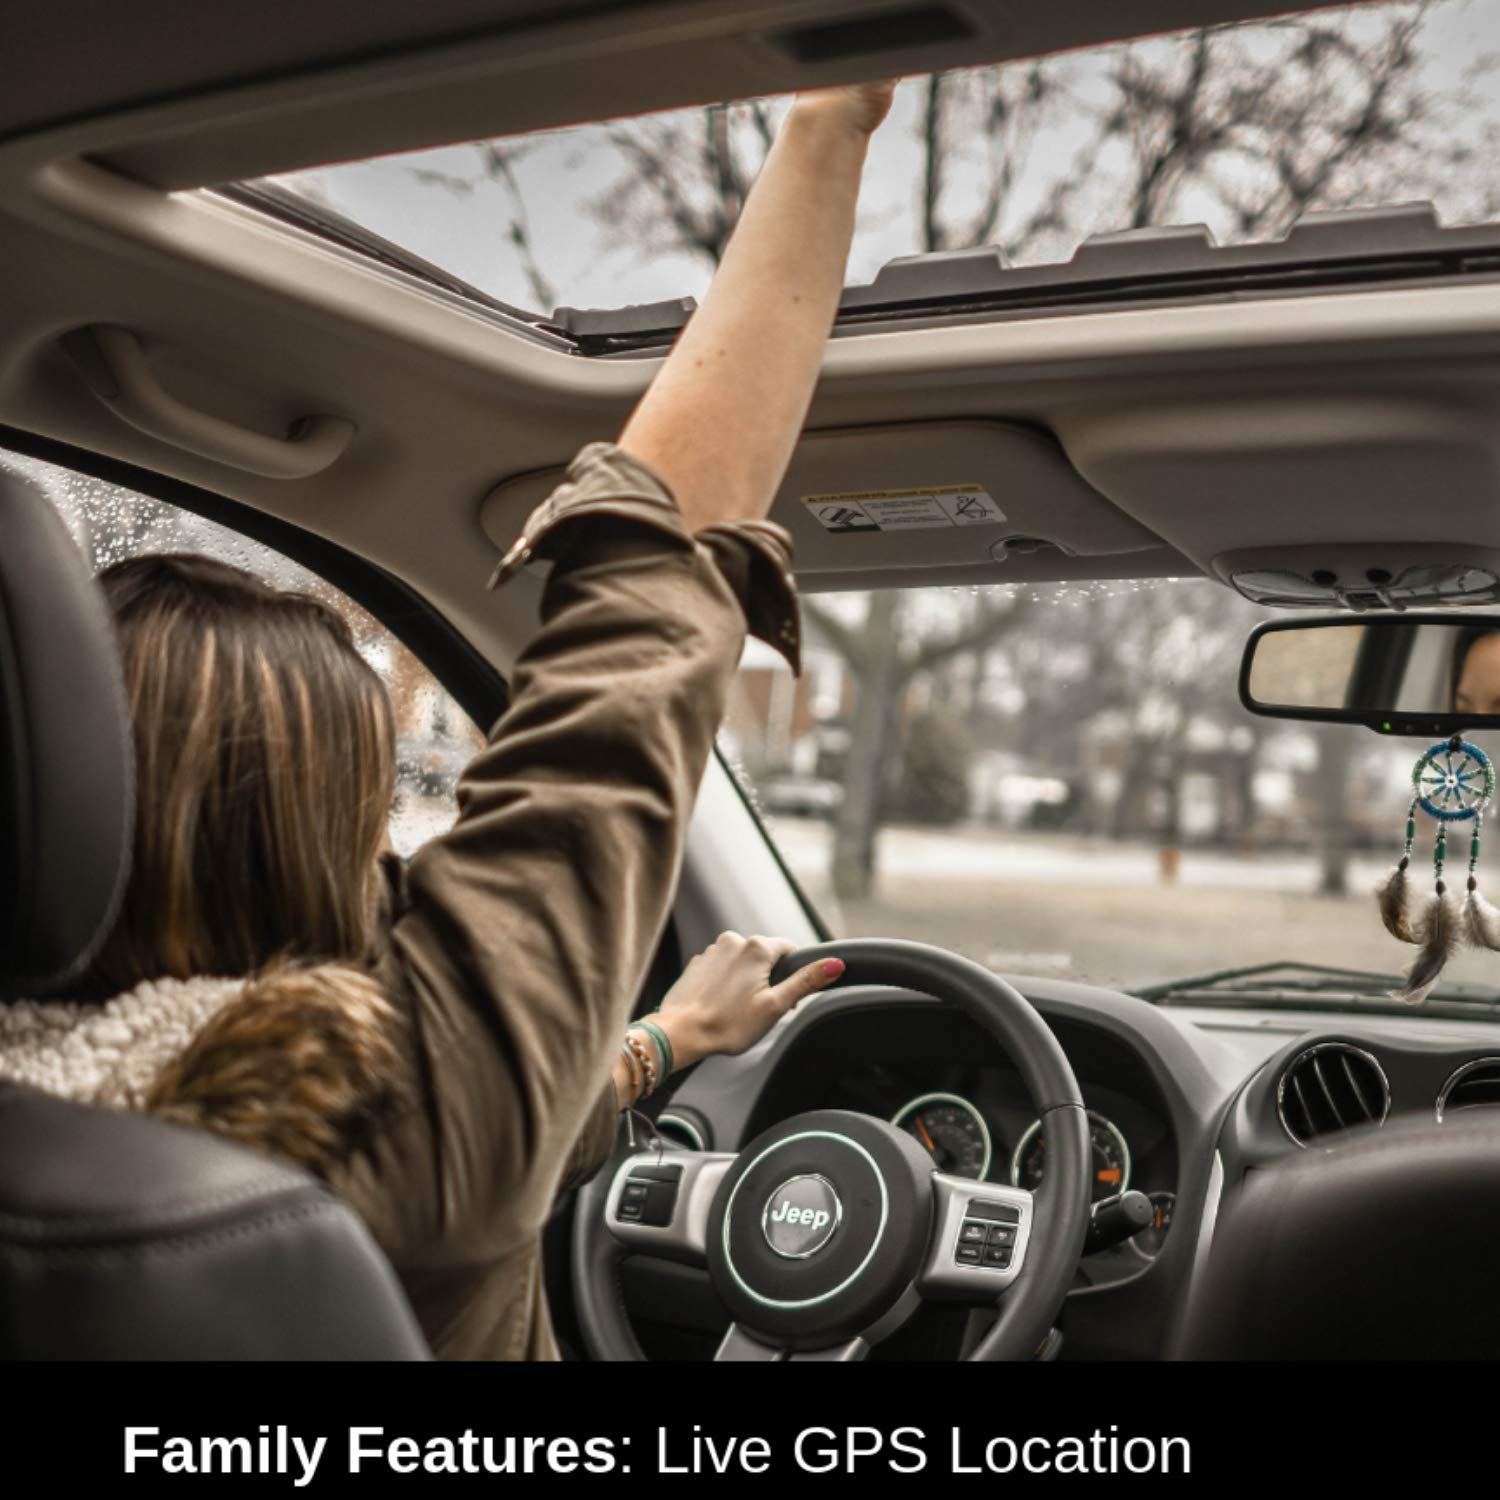 Driving Walking to School MasTrack Track Your Family Hiking Mini Portable Real Time GPS Tracker for Personal /& Vehicle Tracking Your Teens /& Loved Ones and More Monthly